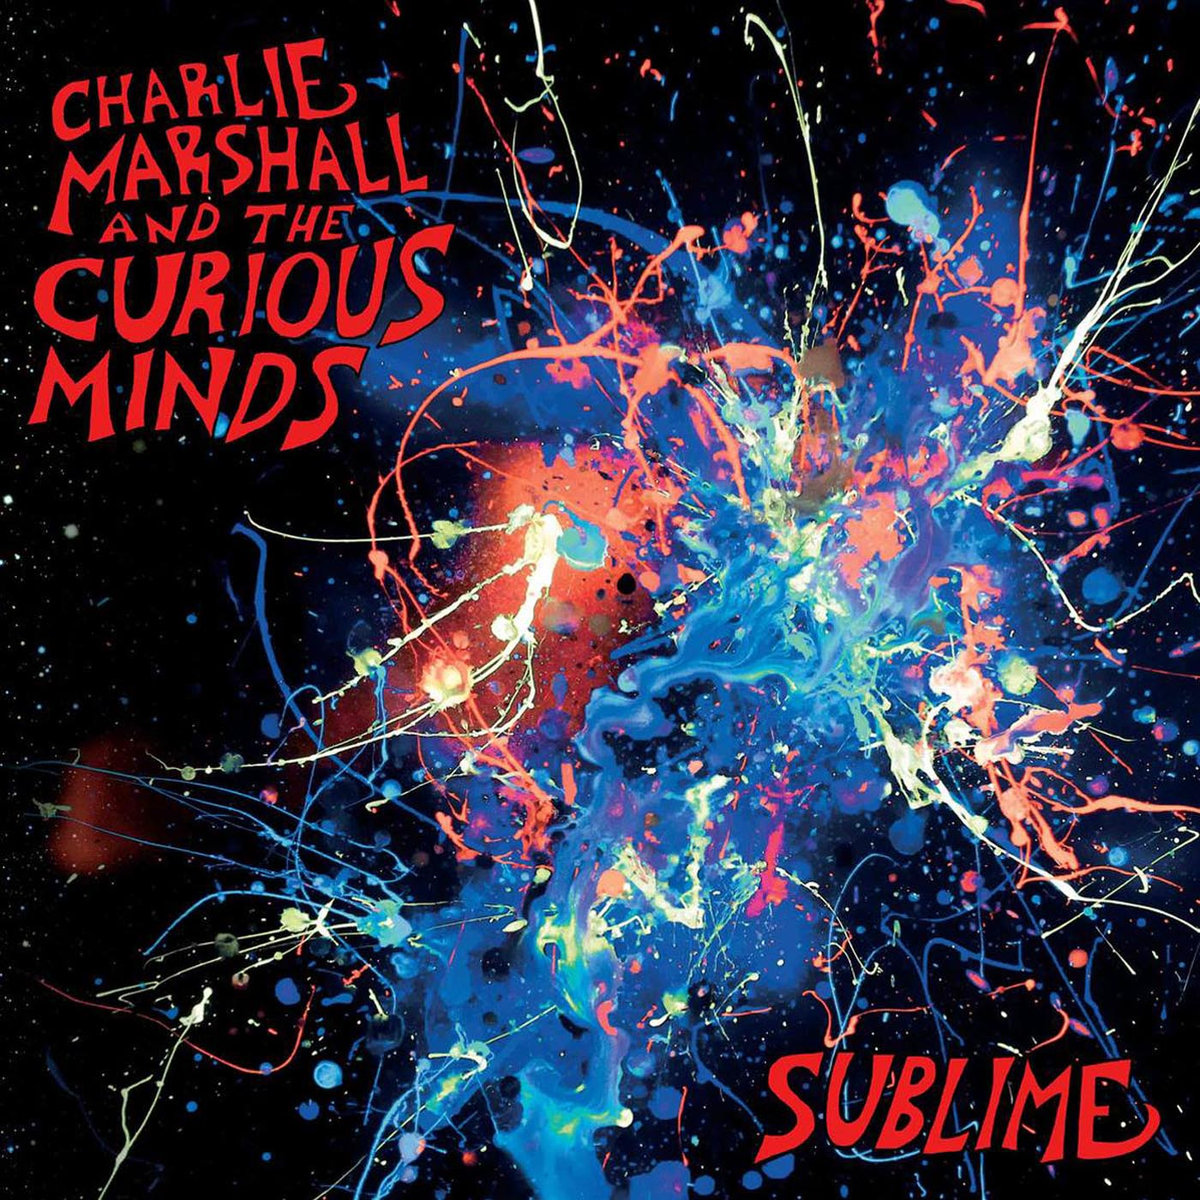 Charlie Marshall and the Curious Minds - Sublime